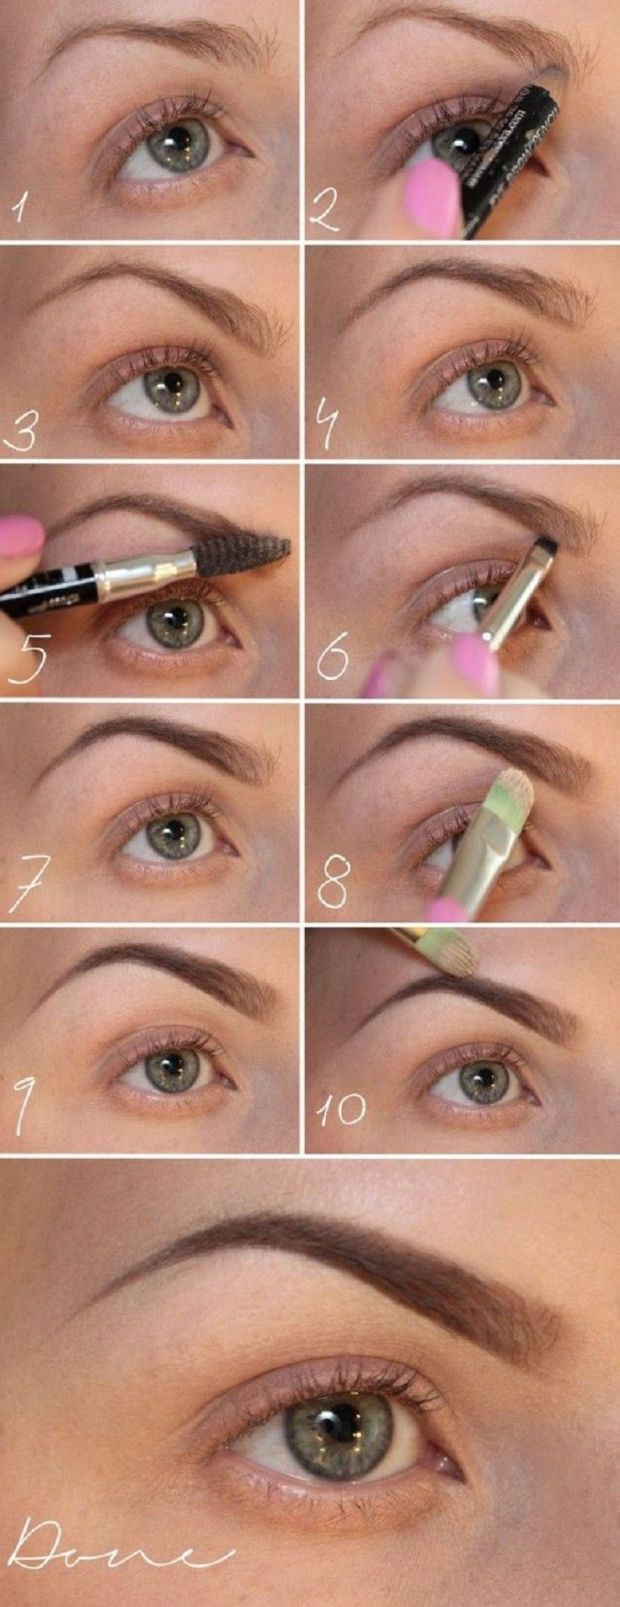 how to shape eyebrows perfectly tips tutorial videos. Black Bedroom Furniture Sets. Home Design Ideas